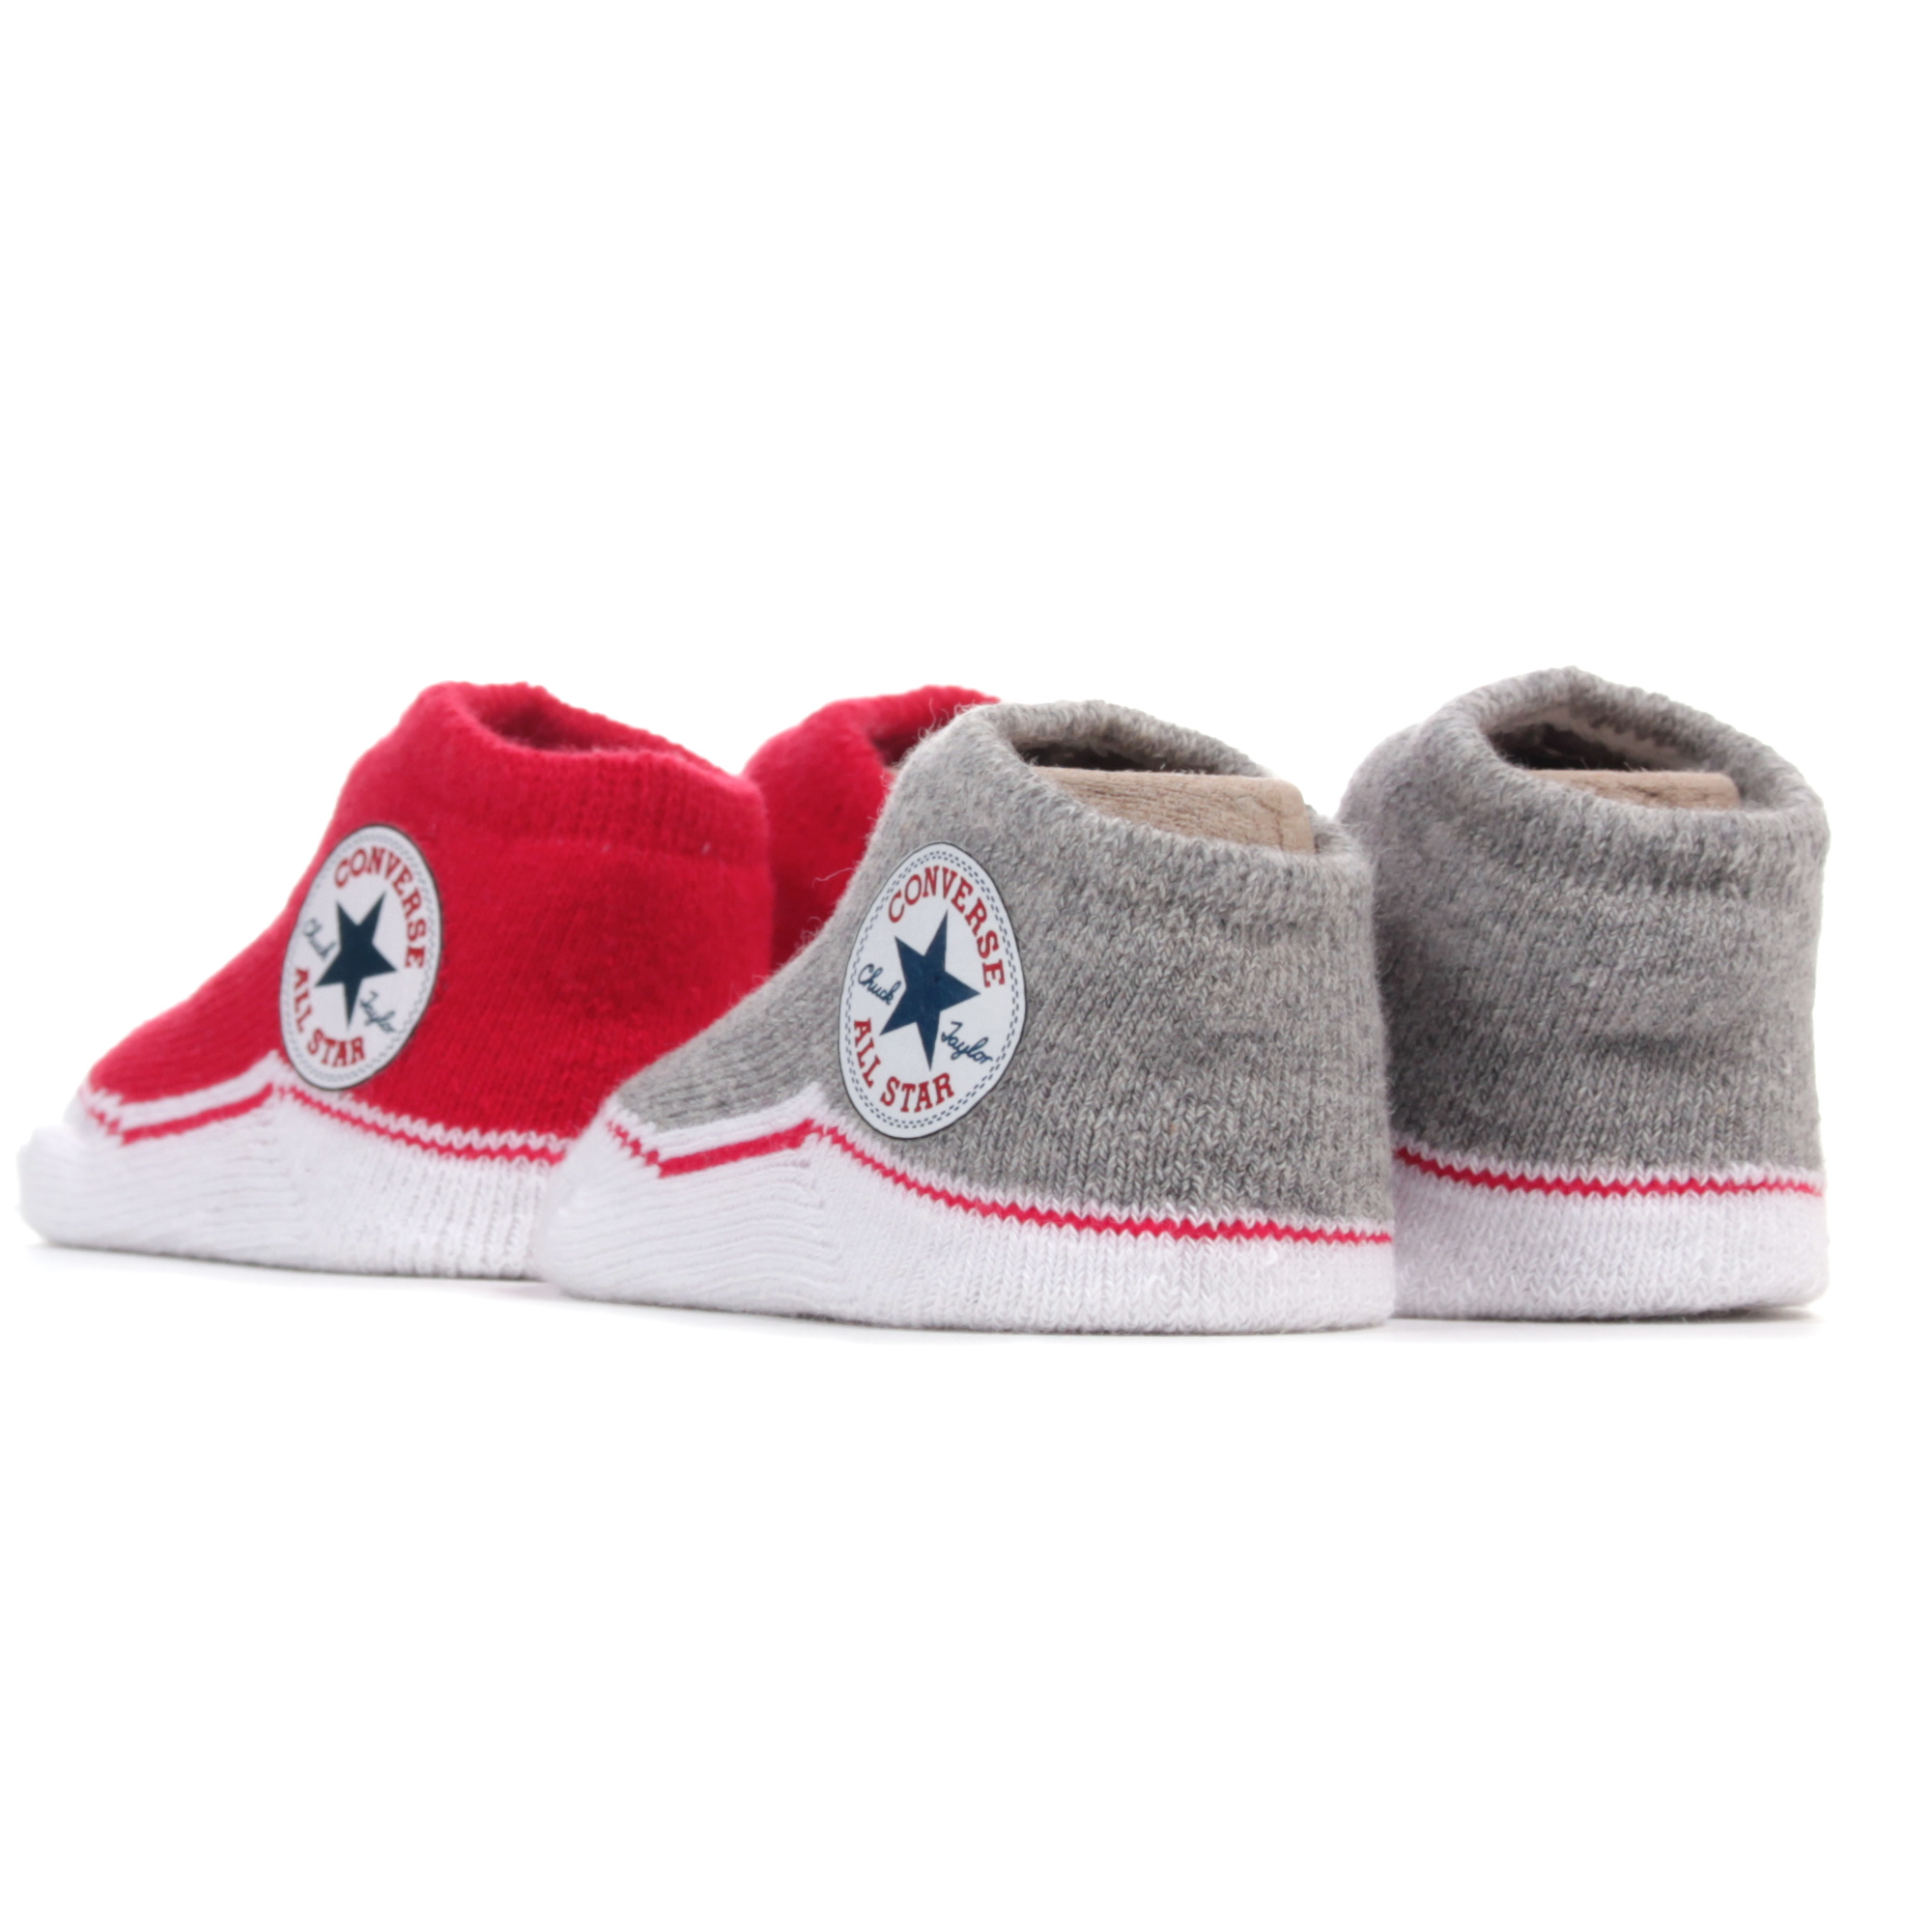 CONVERSE Chuck Taylor All Star Baby Sock Booties 2 Pack